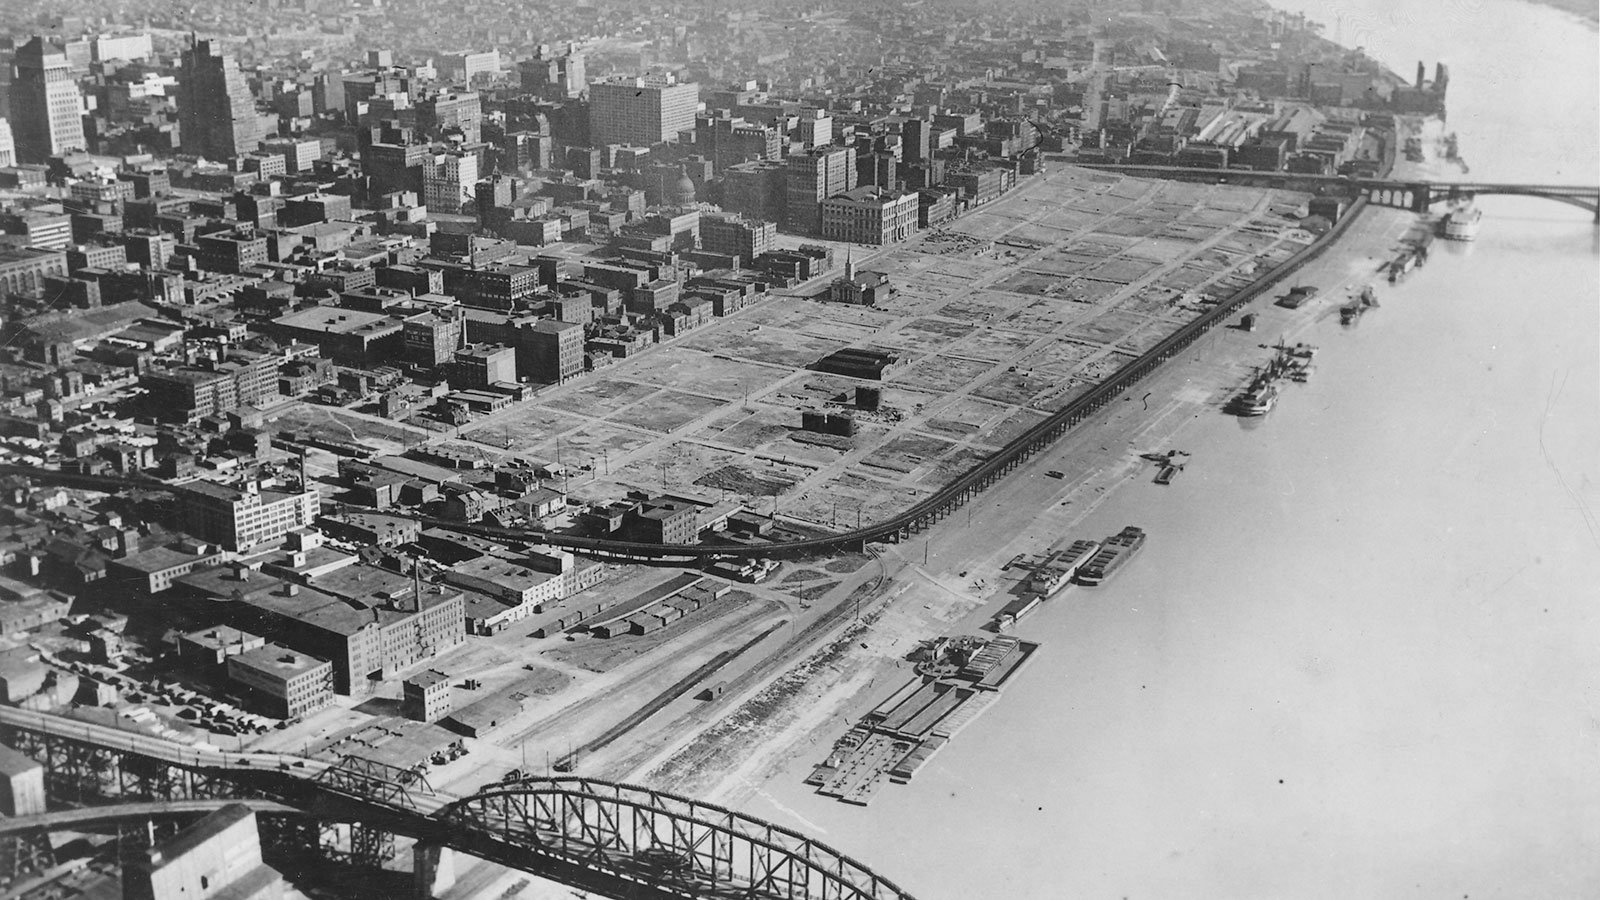 The St. Louis riverfront after demolition of warehouses, circa 1942